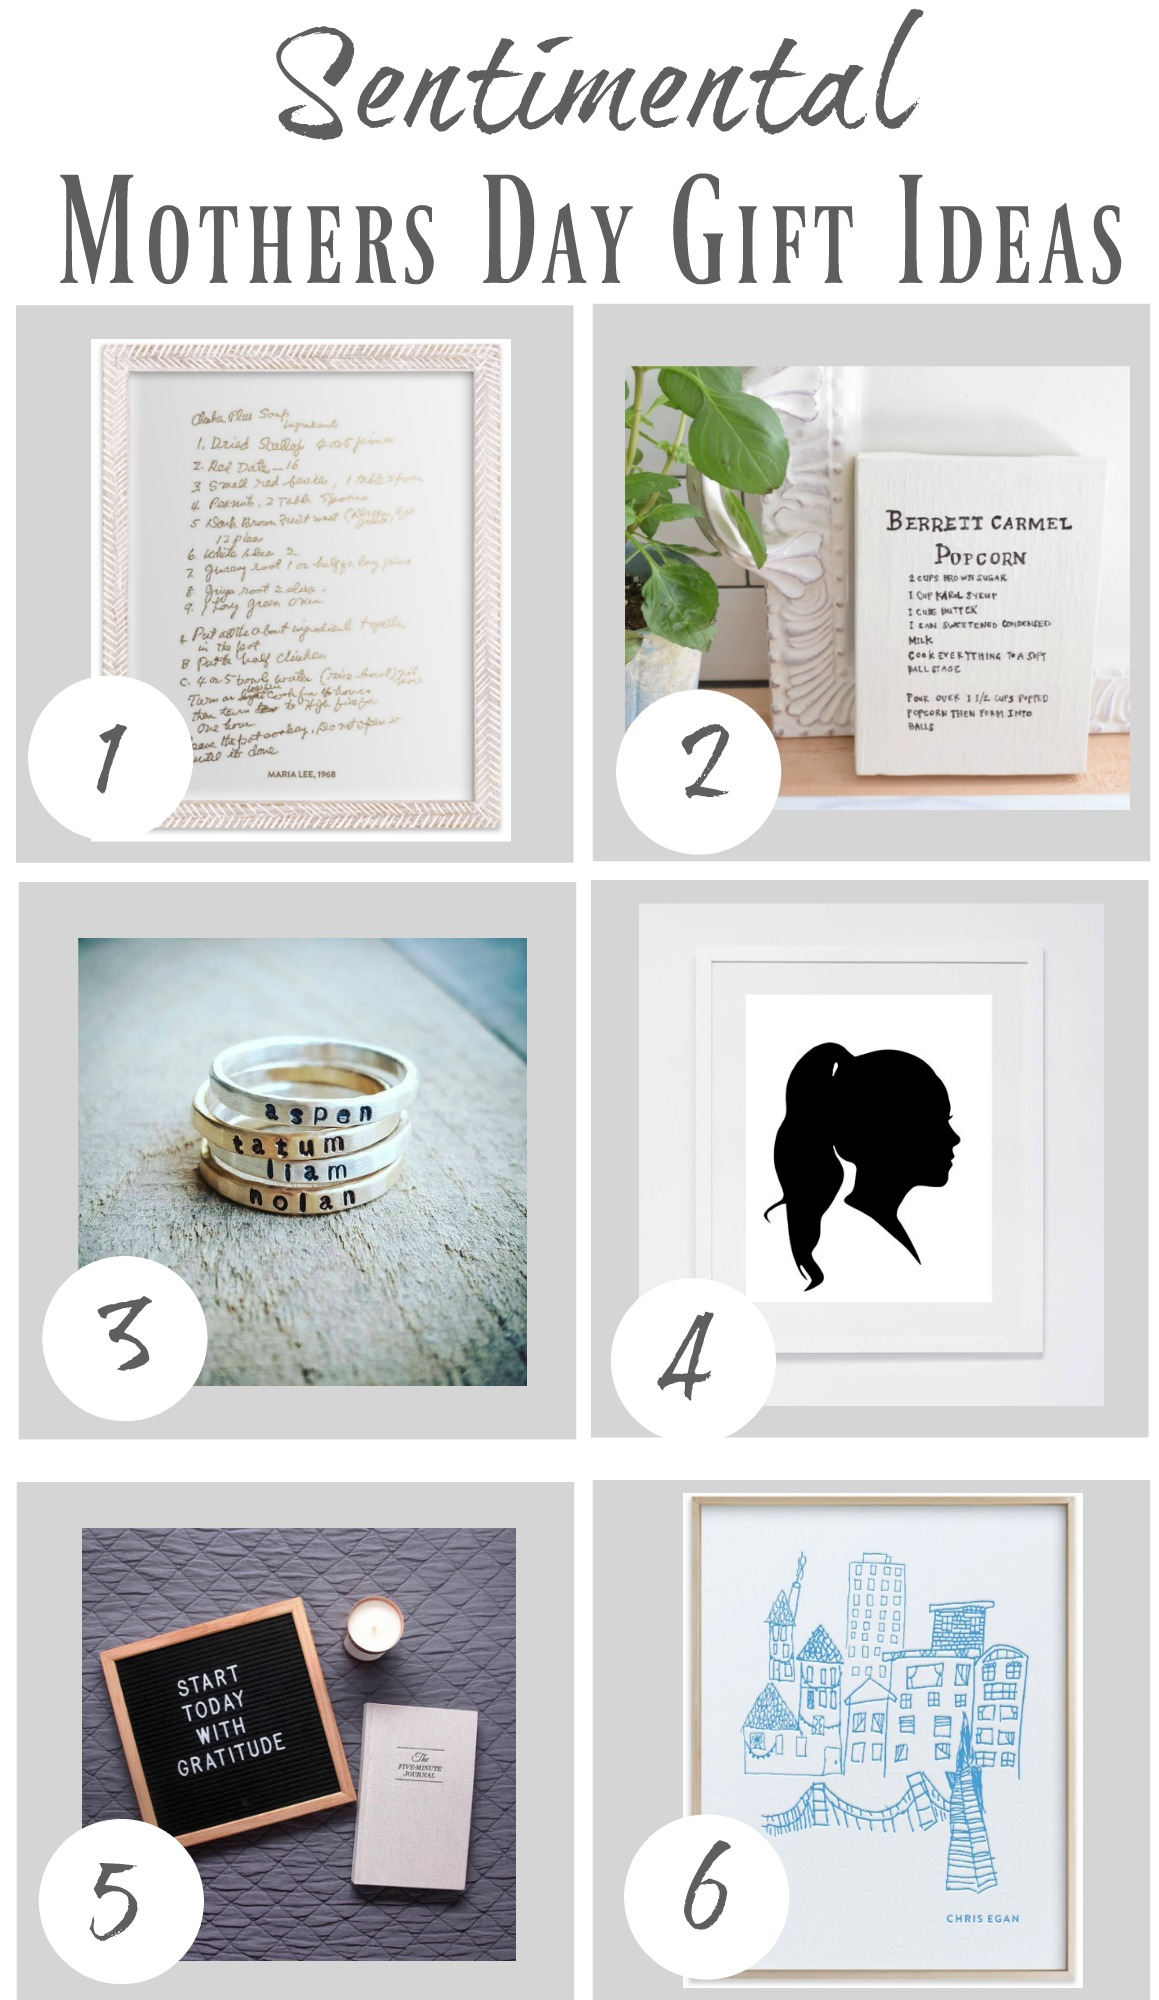 Sentimental Mothers Day Gifts And Diy Art Nesting With Grace